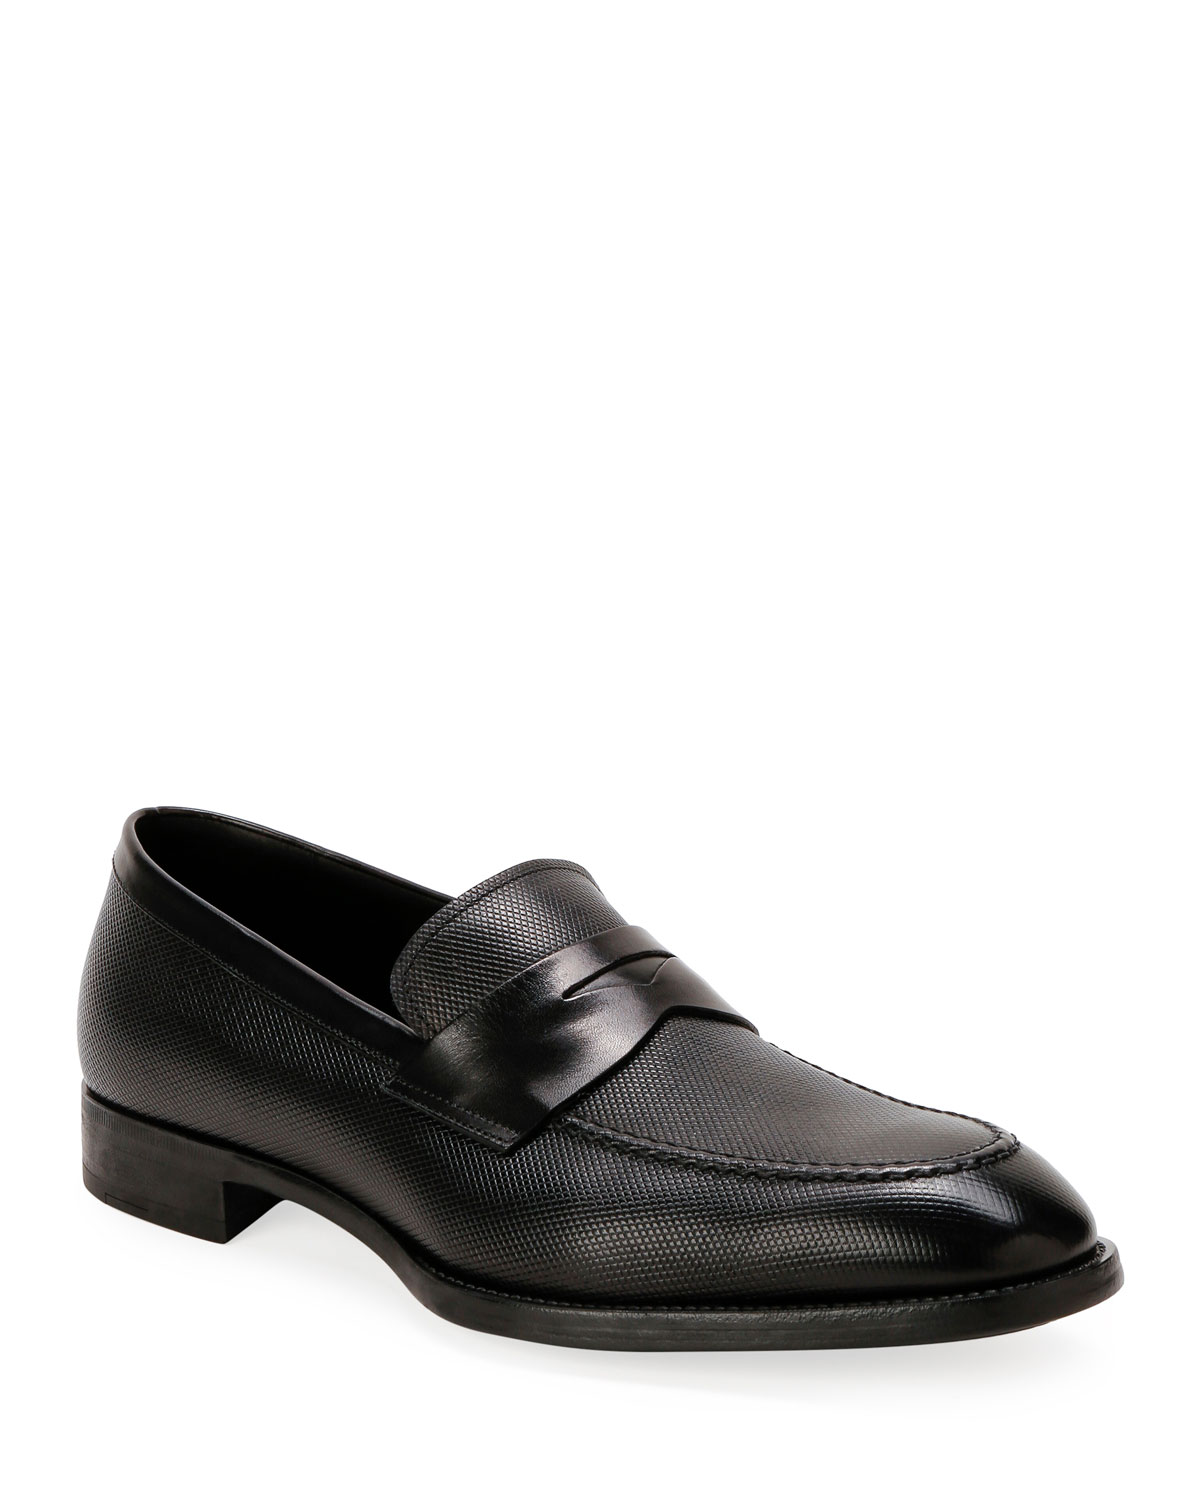 Giorgio Armani Loafers MEN'S TEXTURED LEATHER PENNY LOAFERS